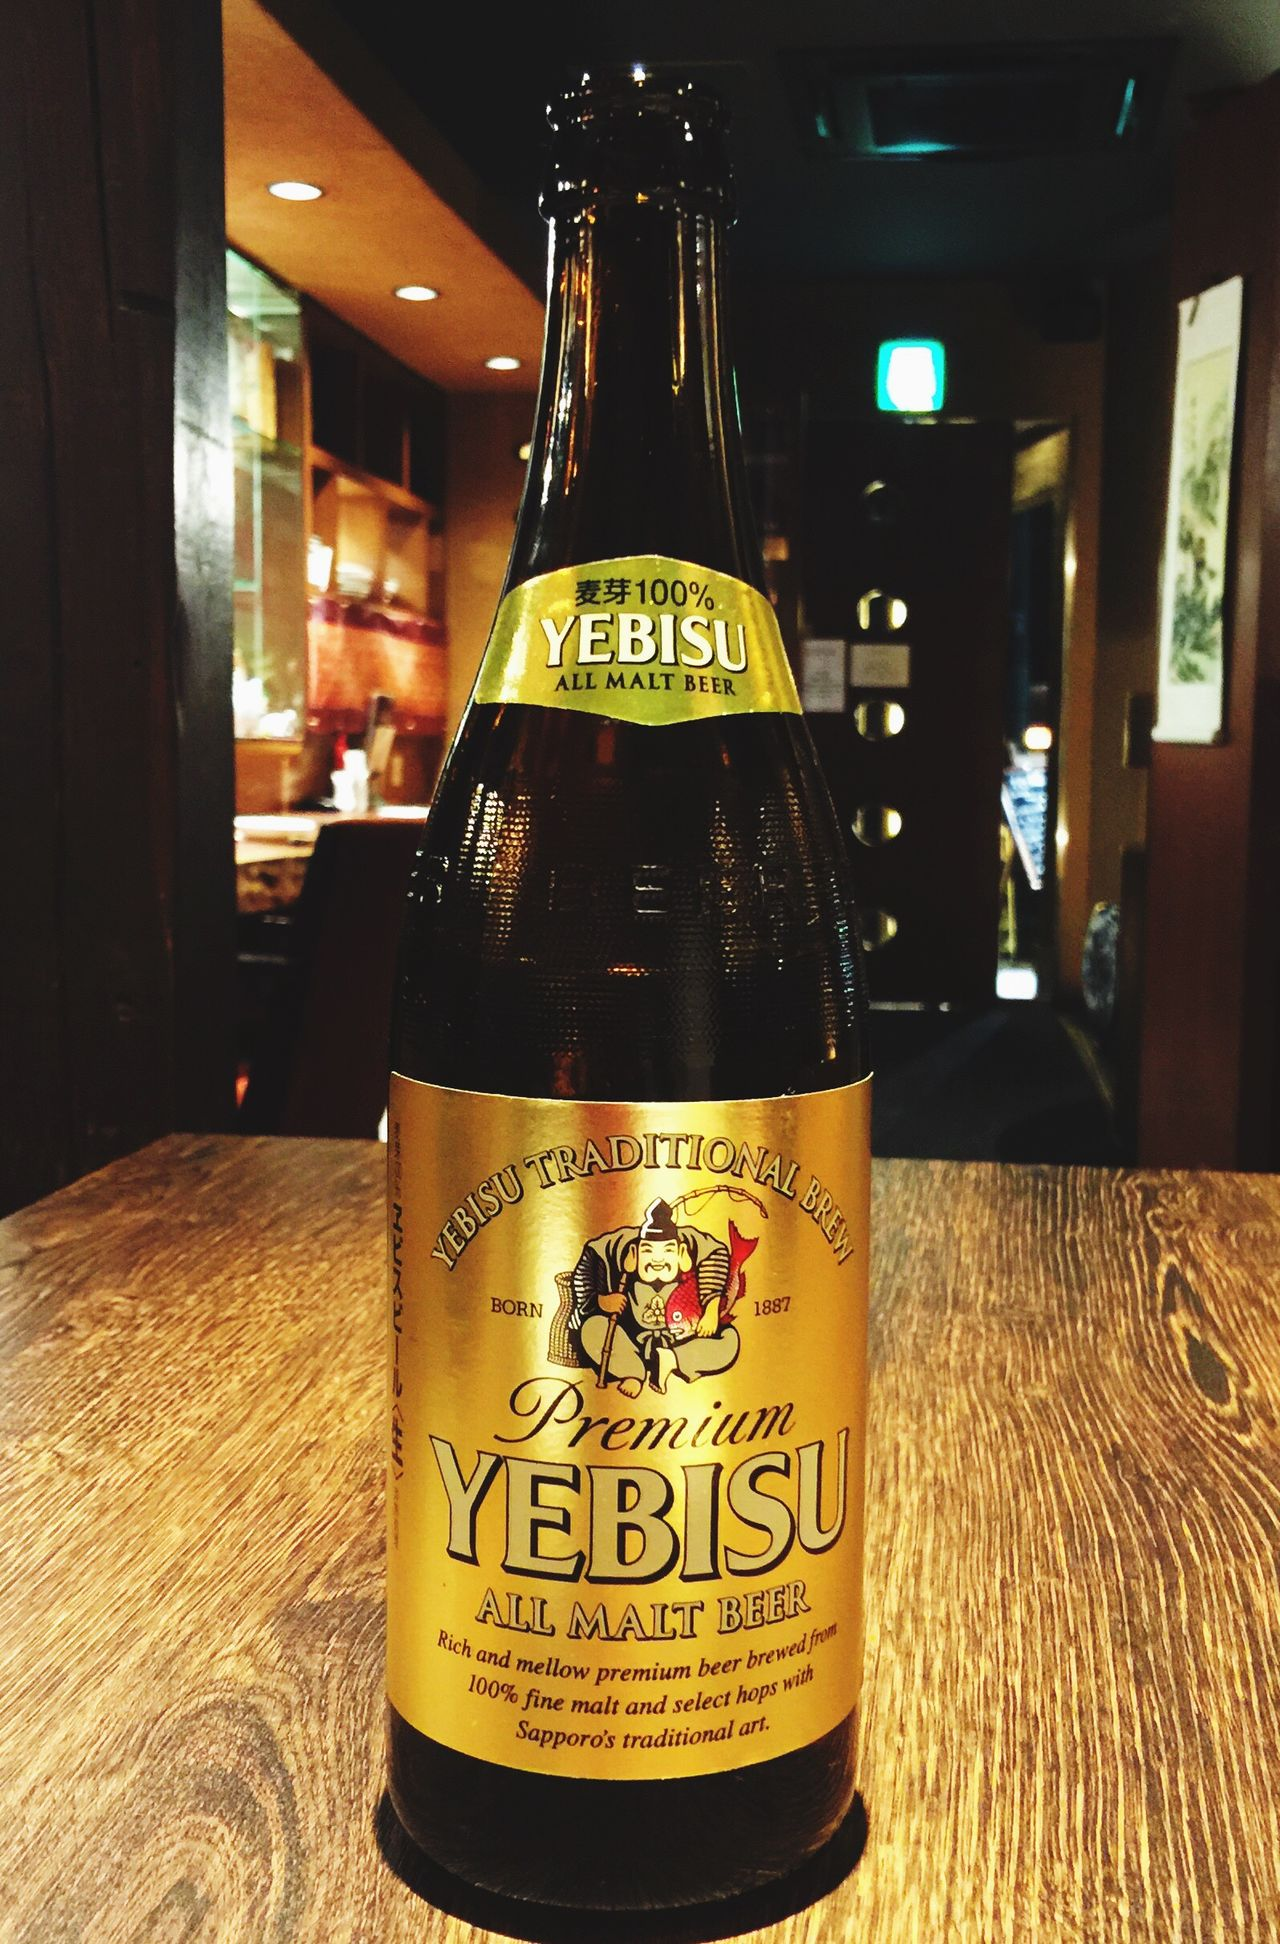 YEBISU YEBISU Beer Check This Out Hello World Cheese! Hi! Taking Photos Enjoying Life